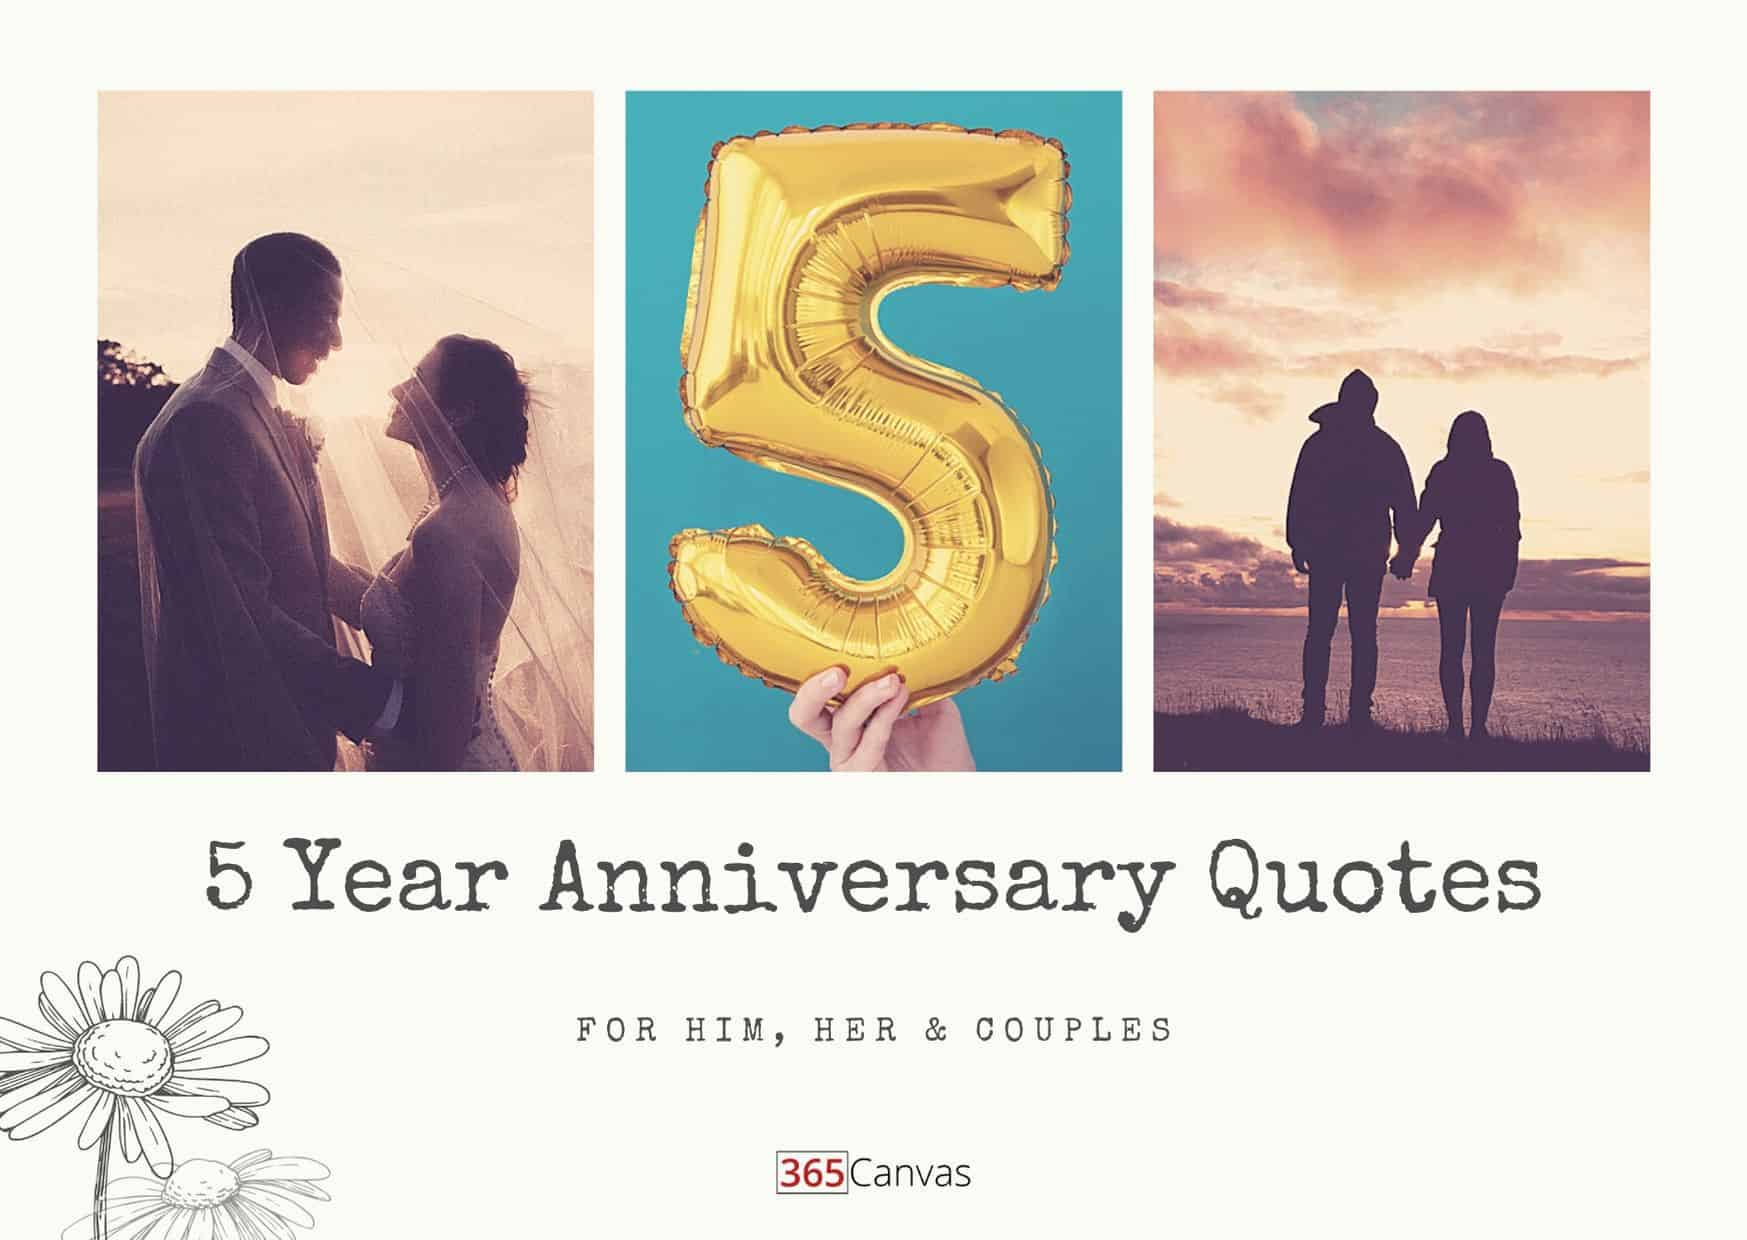 5 Year Anniversary Quotes For Him, Her And Couples